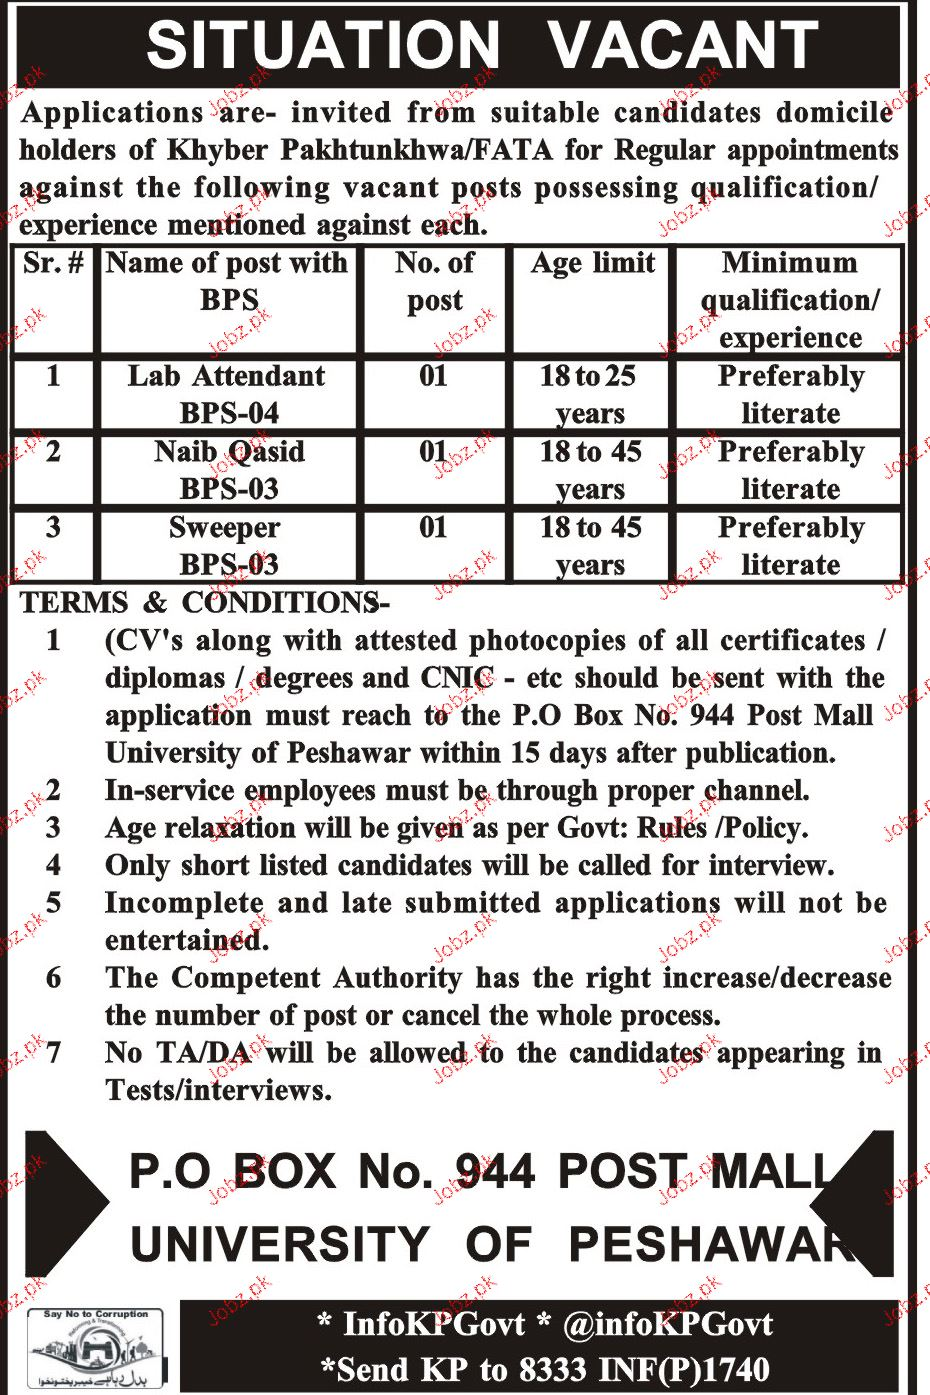 Lab Attendants, Naib Qasid and Sweepers Job Opportunity